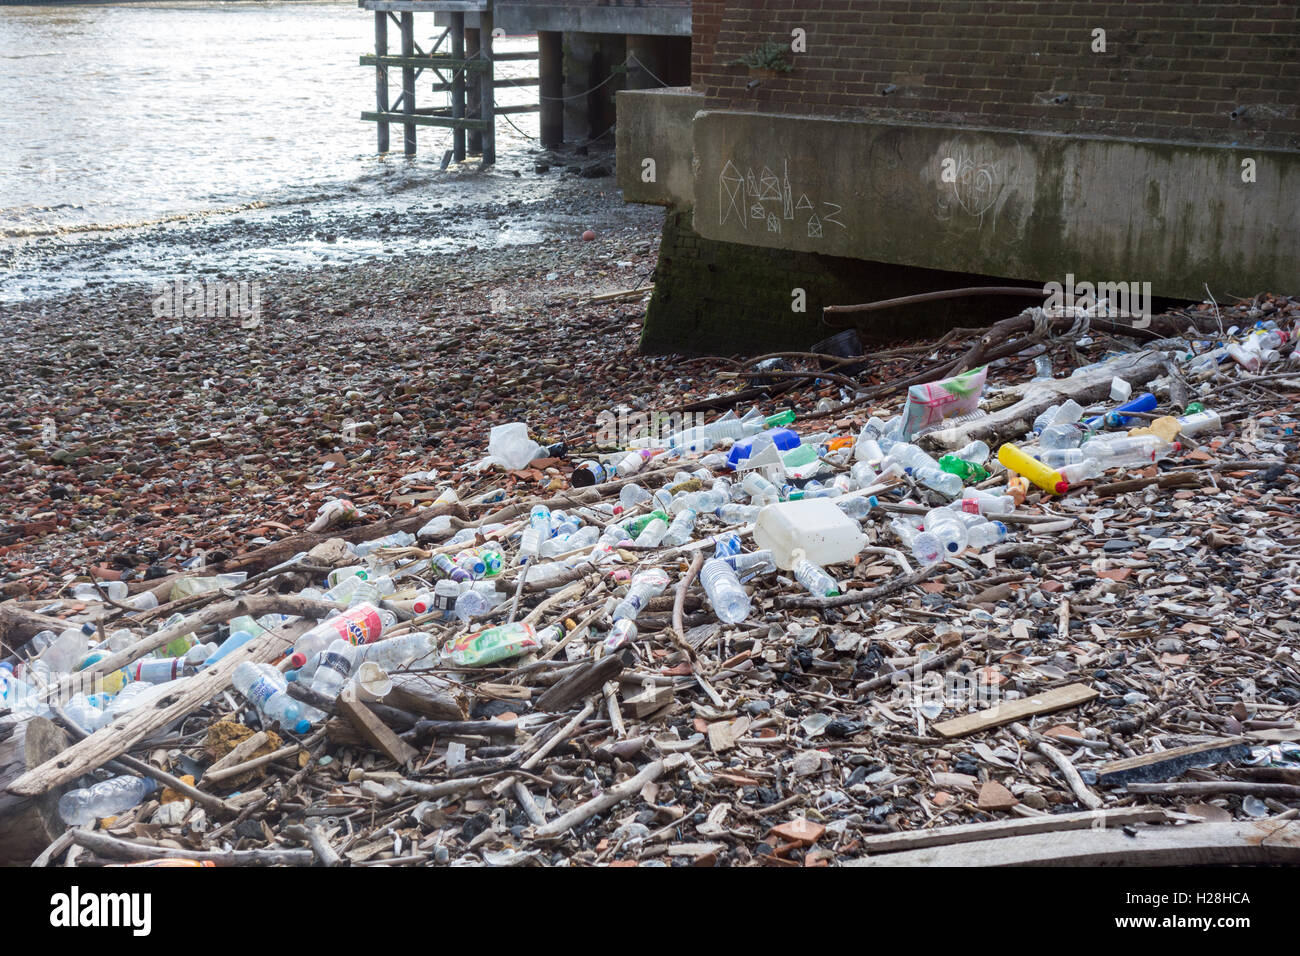 Plastic bottles and waste trash on the banks on the River Thames, London, UK Stock Photo